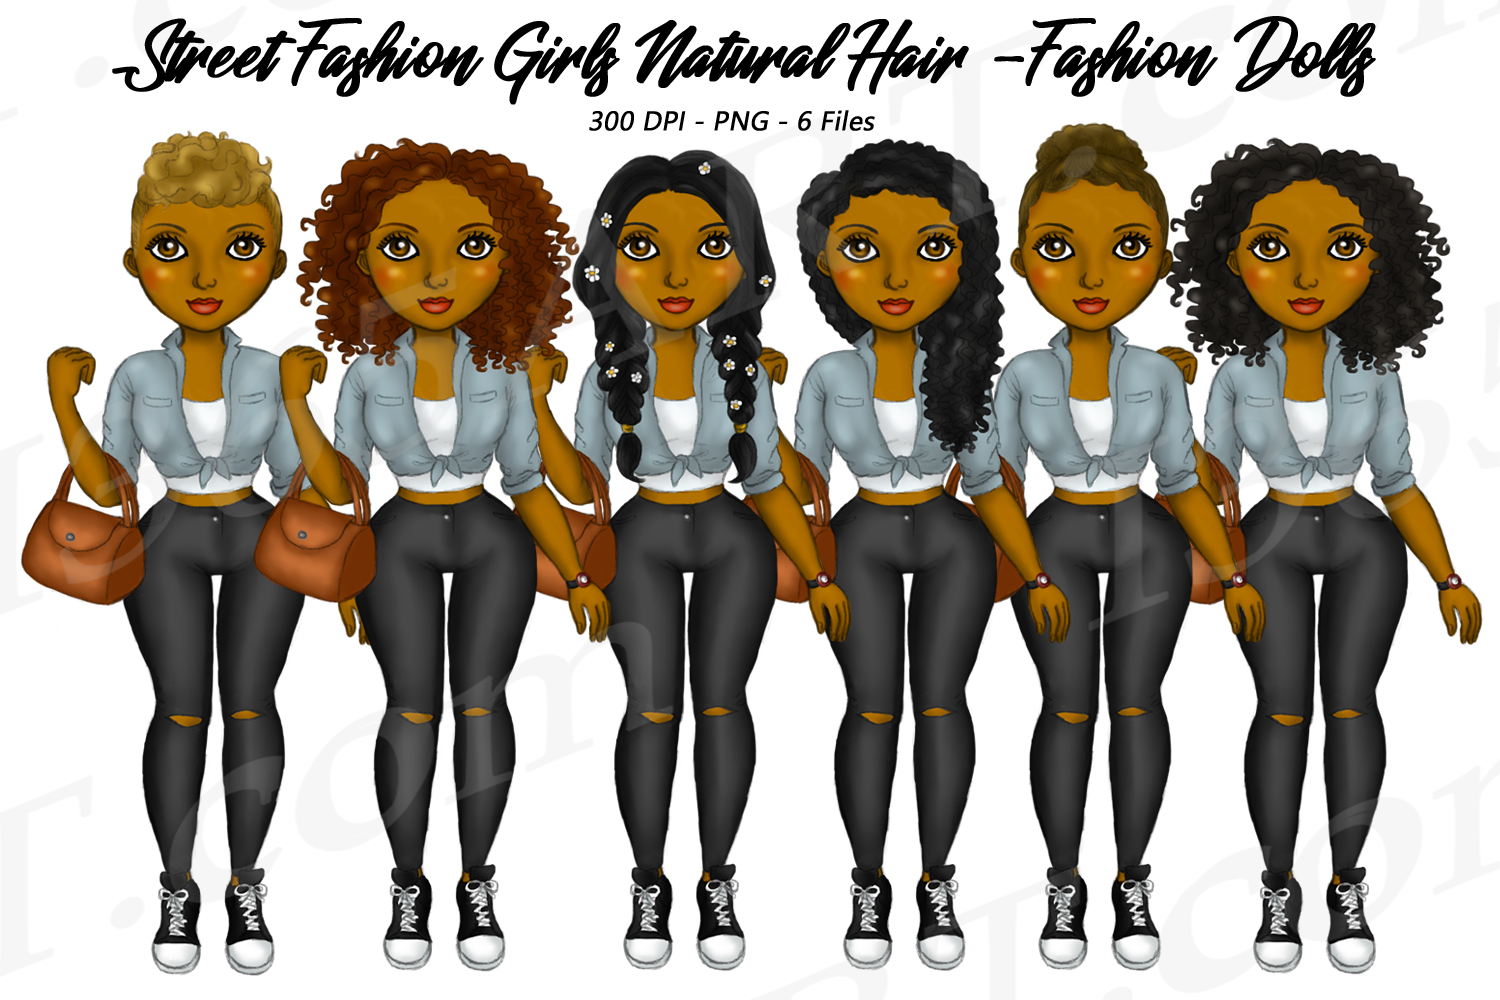 Street Fashion Girls Natural Hair Clipart, Black Girl Dolls example image 1